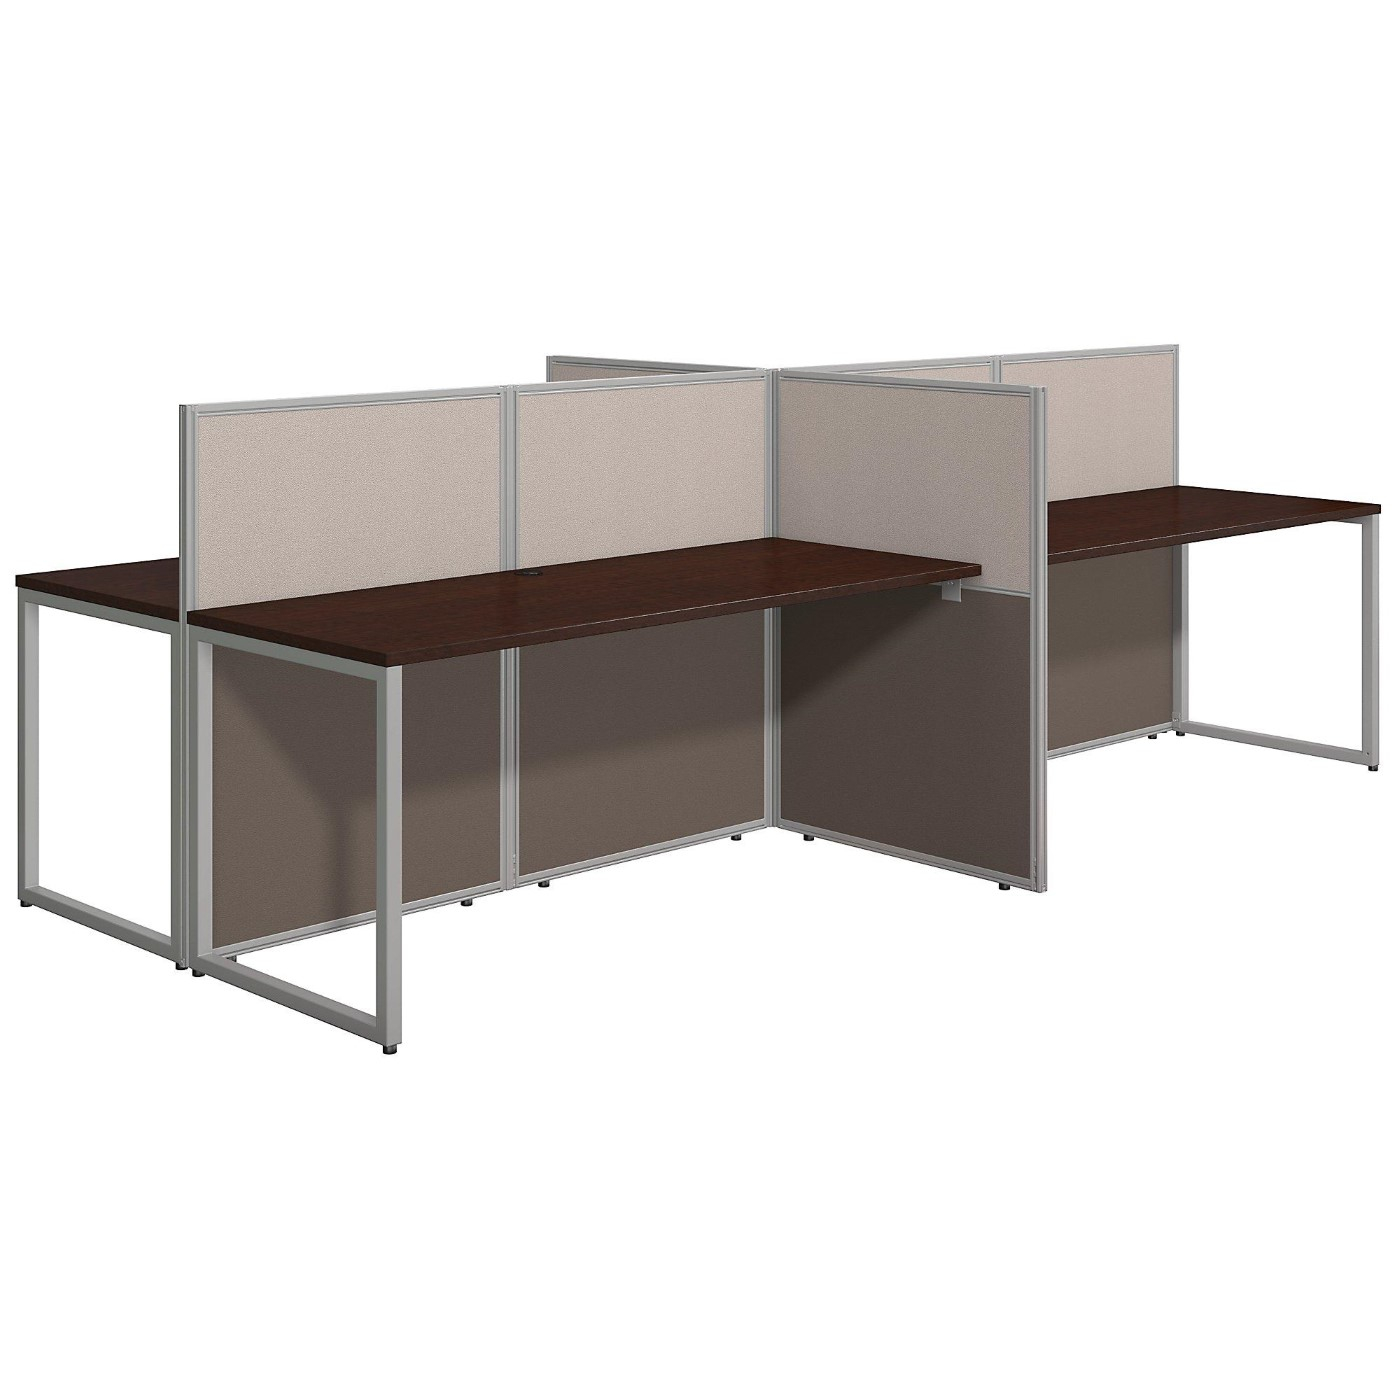 BUSH BUSINESS FURNITURE EASY OFFICE 60W 4 PERSON STRAIGHT DESK OPEN OFFICE. FREE SHIPPING.  SALE DEDUCT 10% MORE ENTER '10percent' IN COUPON CODE BOX WHILE CHECKING OUT. ENDS 5-31-20.